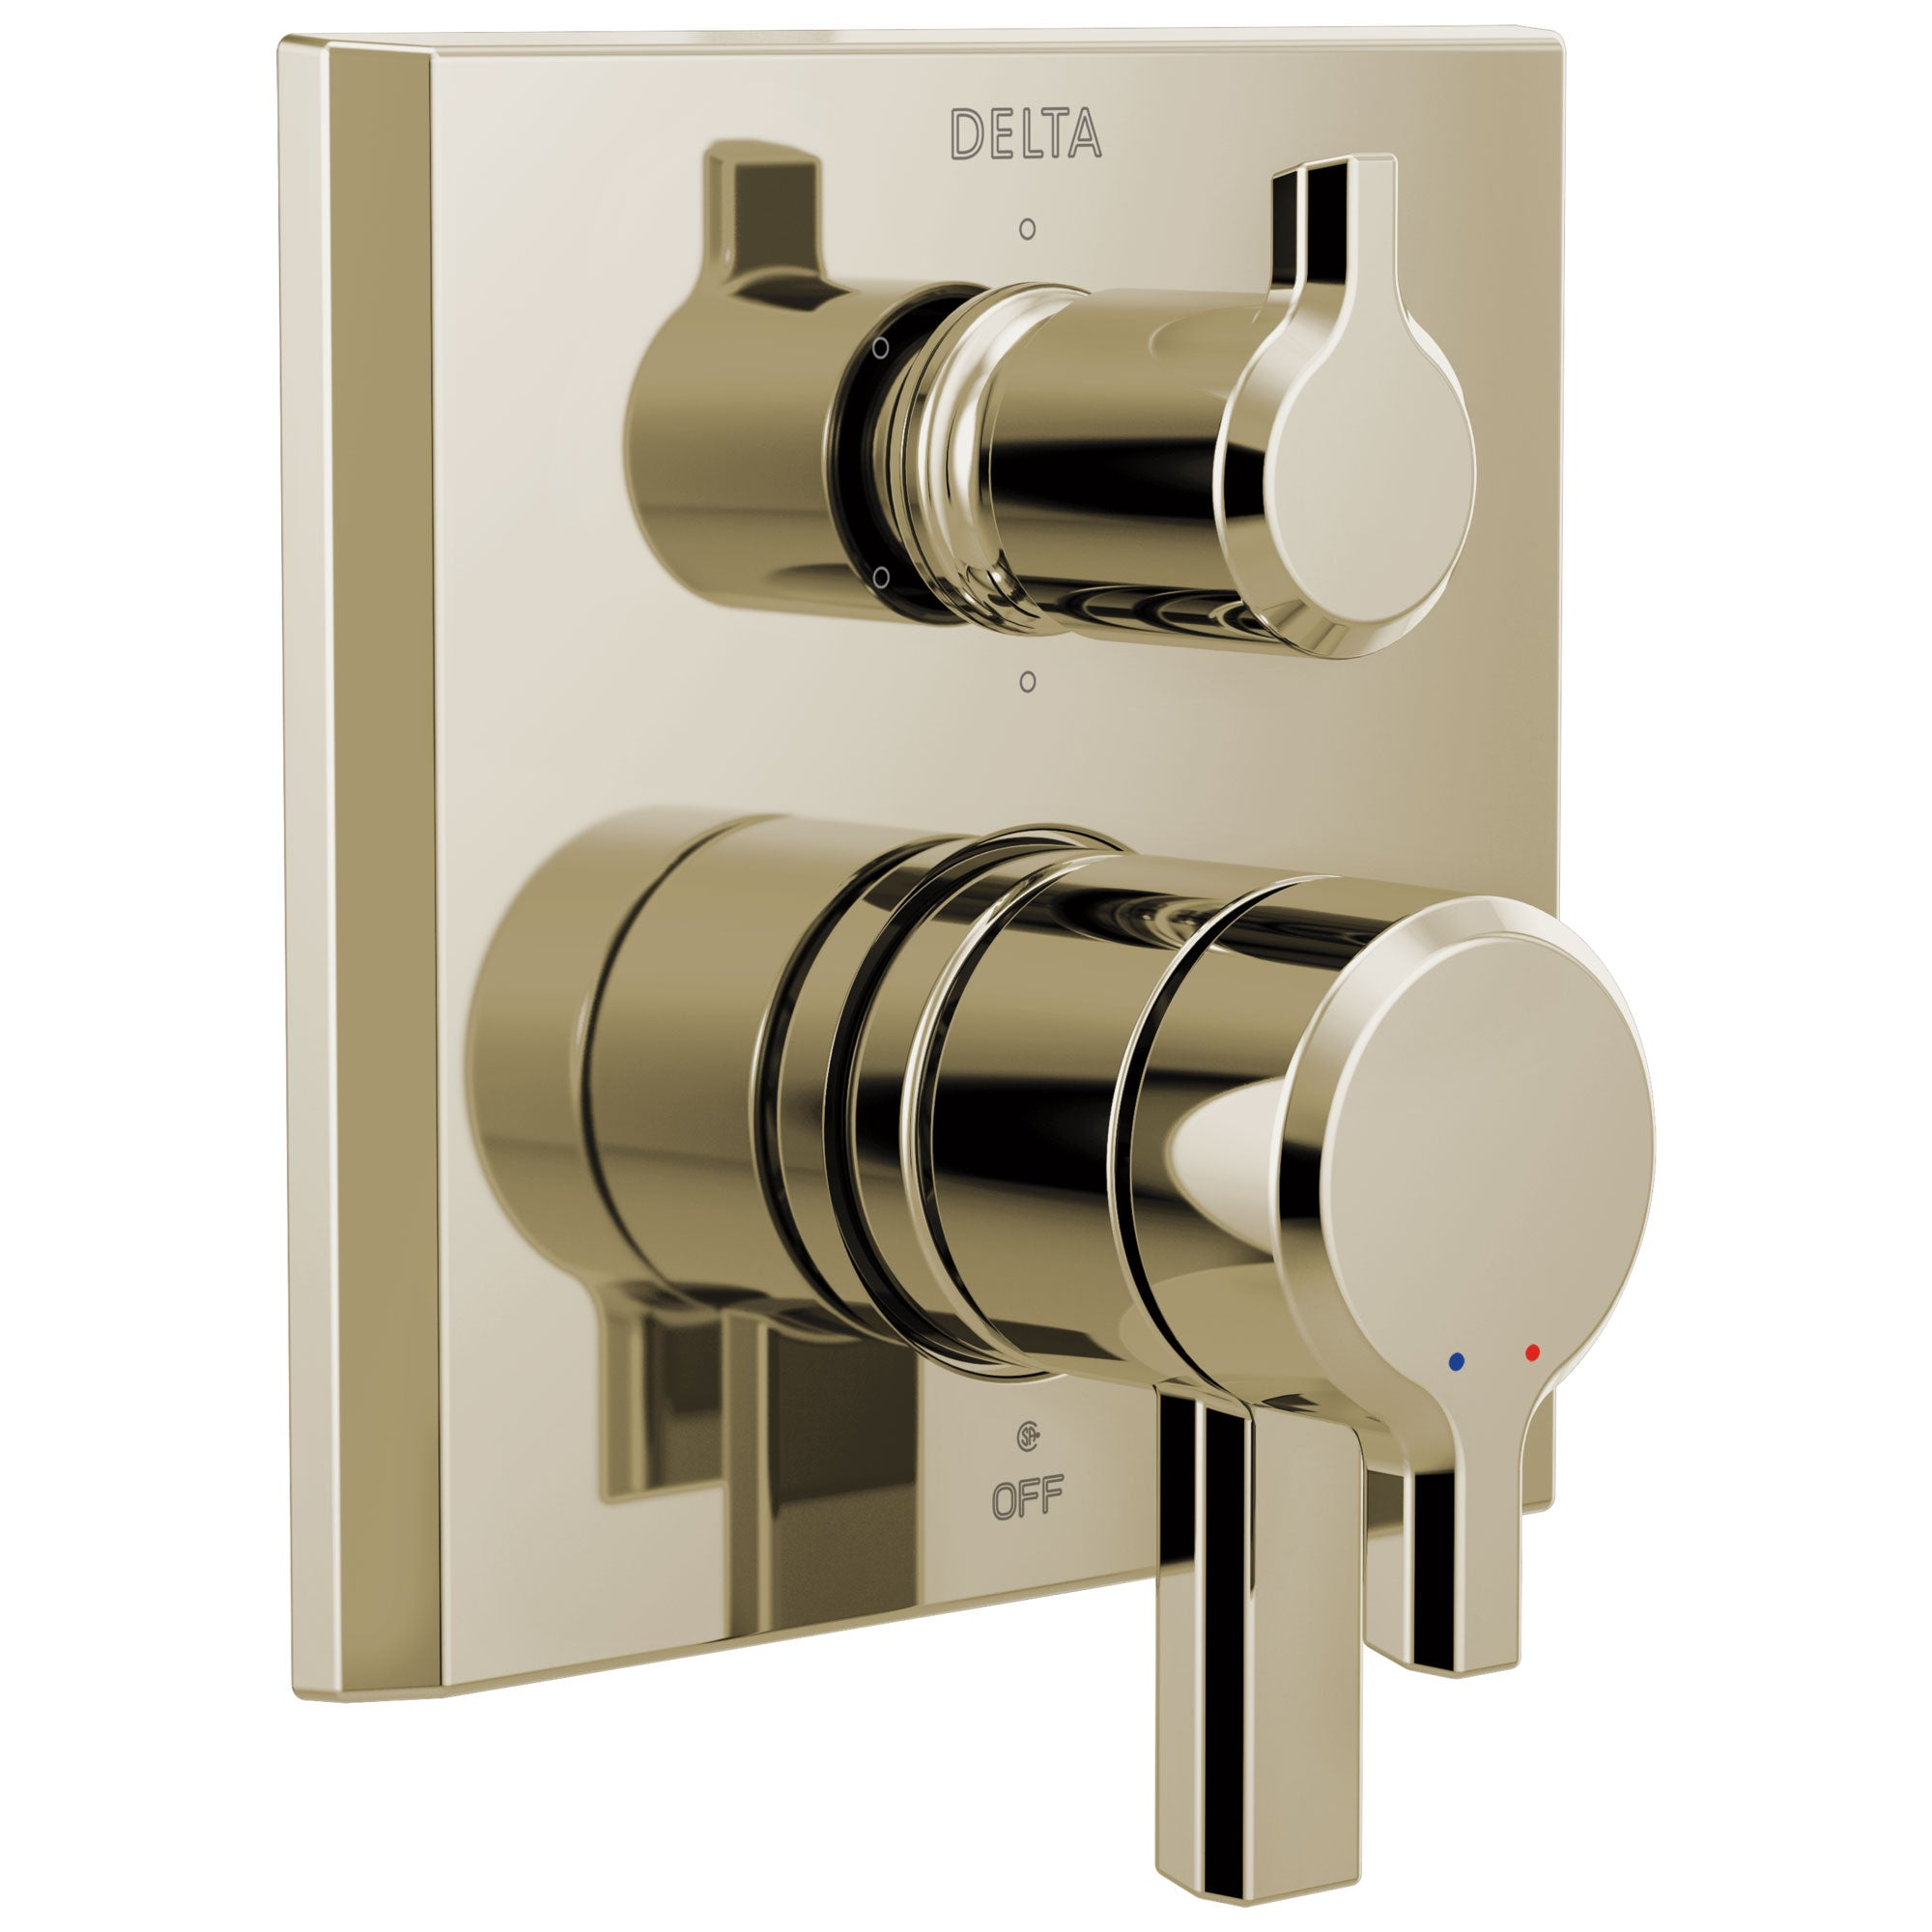 Delta Pivotal Polished Nickel Finish Monitor 17 Series Shower System Control with 6-Setting Diverter Includes Rough-in Valve and Handles D3697V